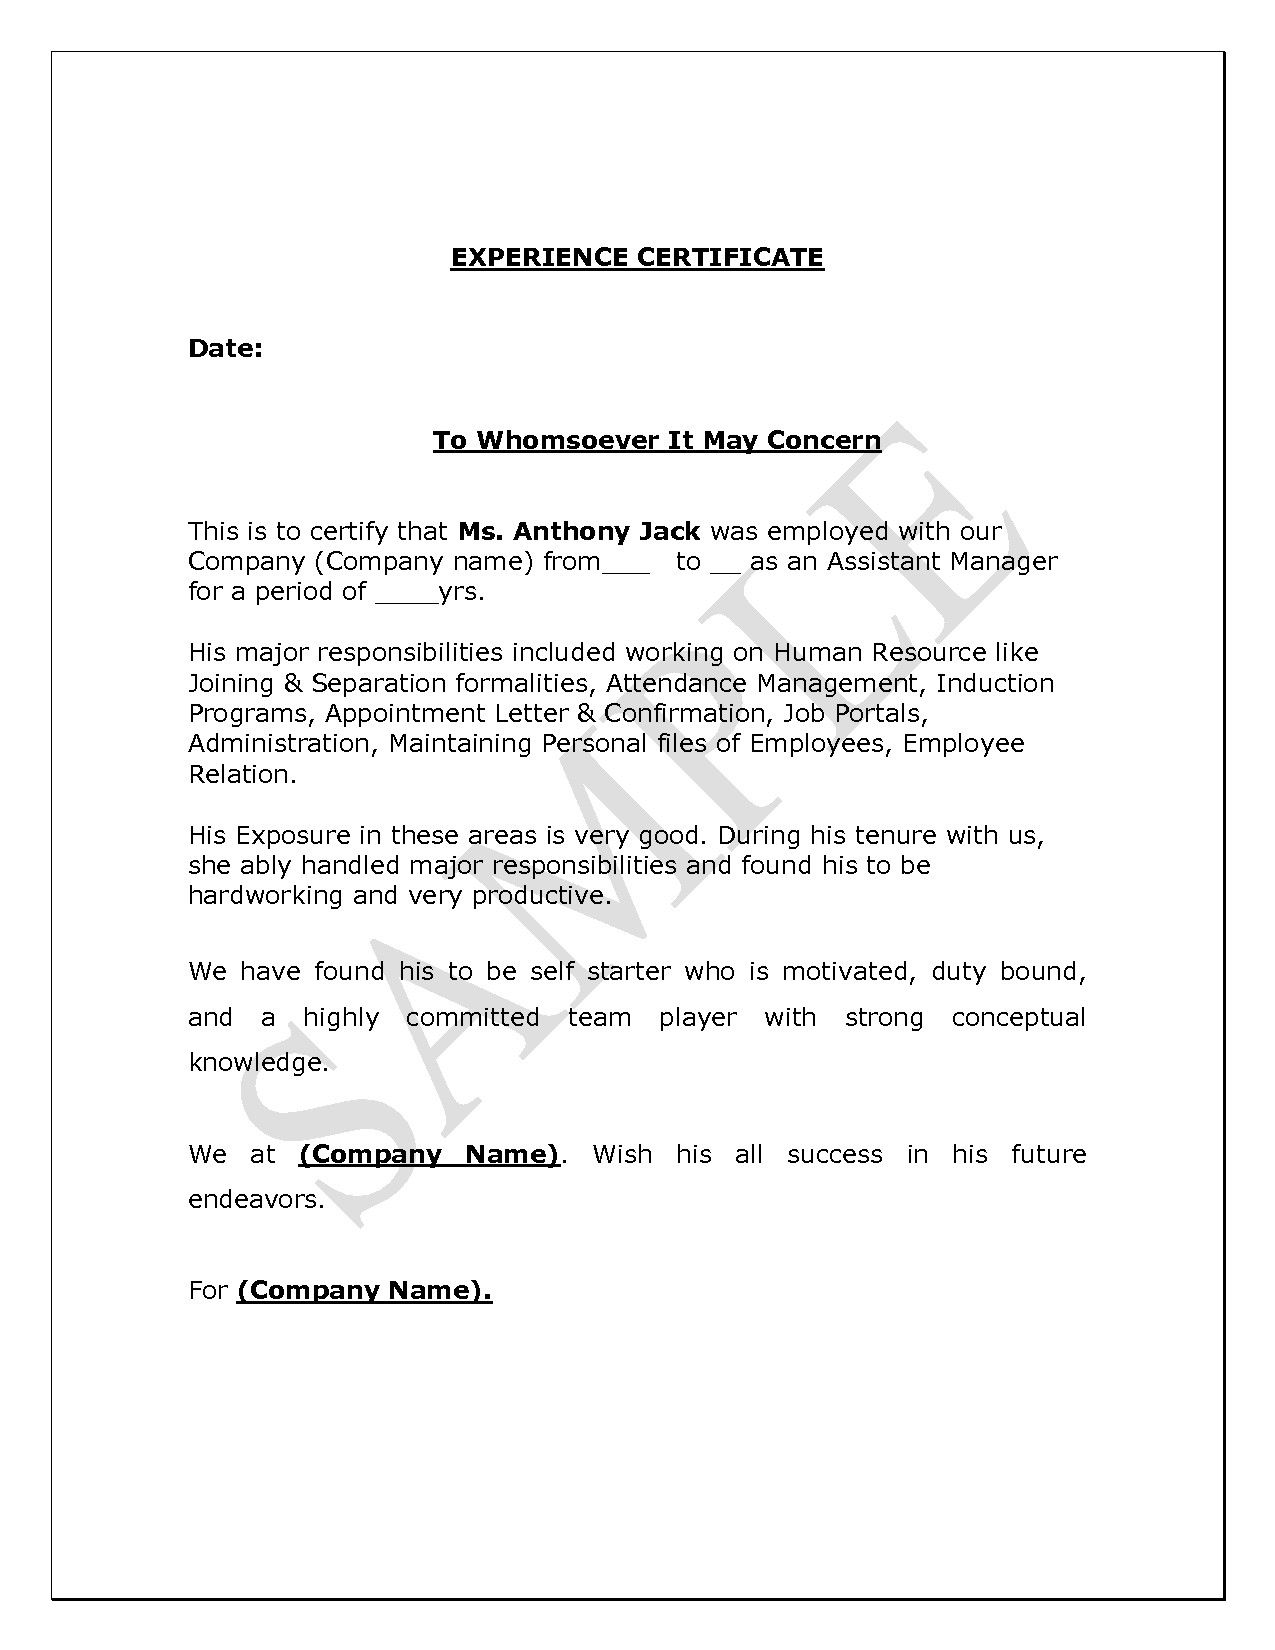 Experience Letter Format Supervisor Copy Experience Certificate Format For Lecturer Pdf Certificate Format Letter Writing Format Work Reference Letter